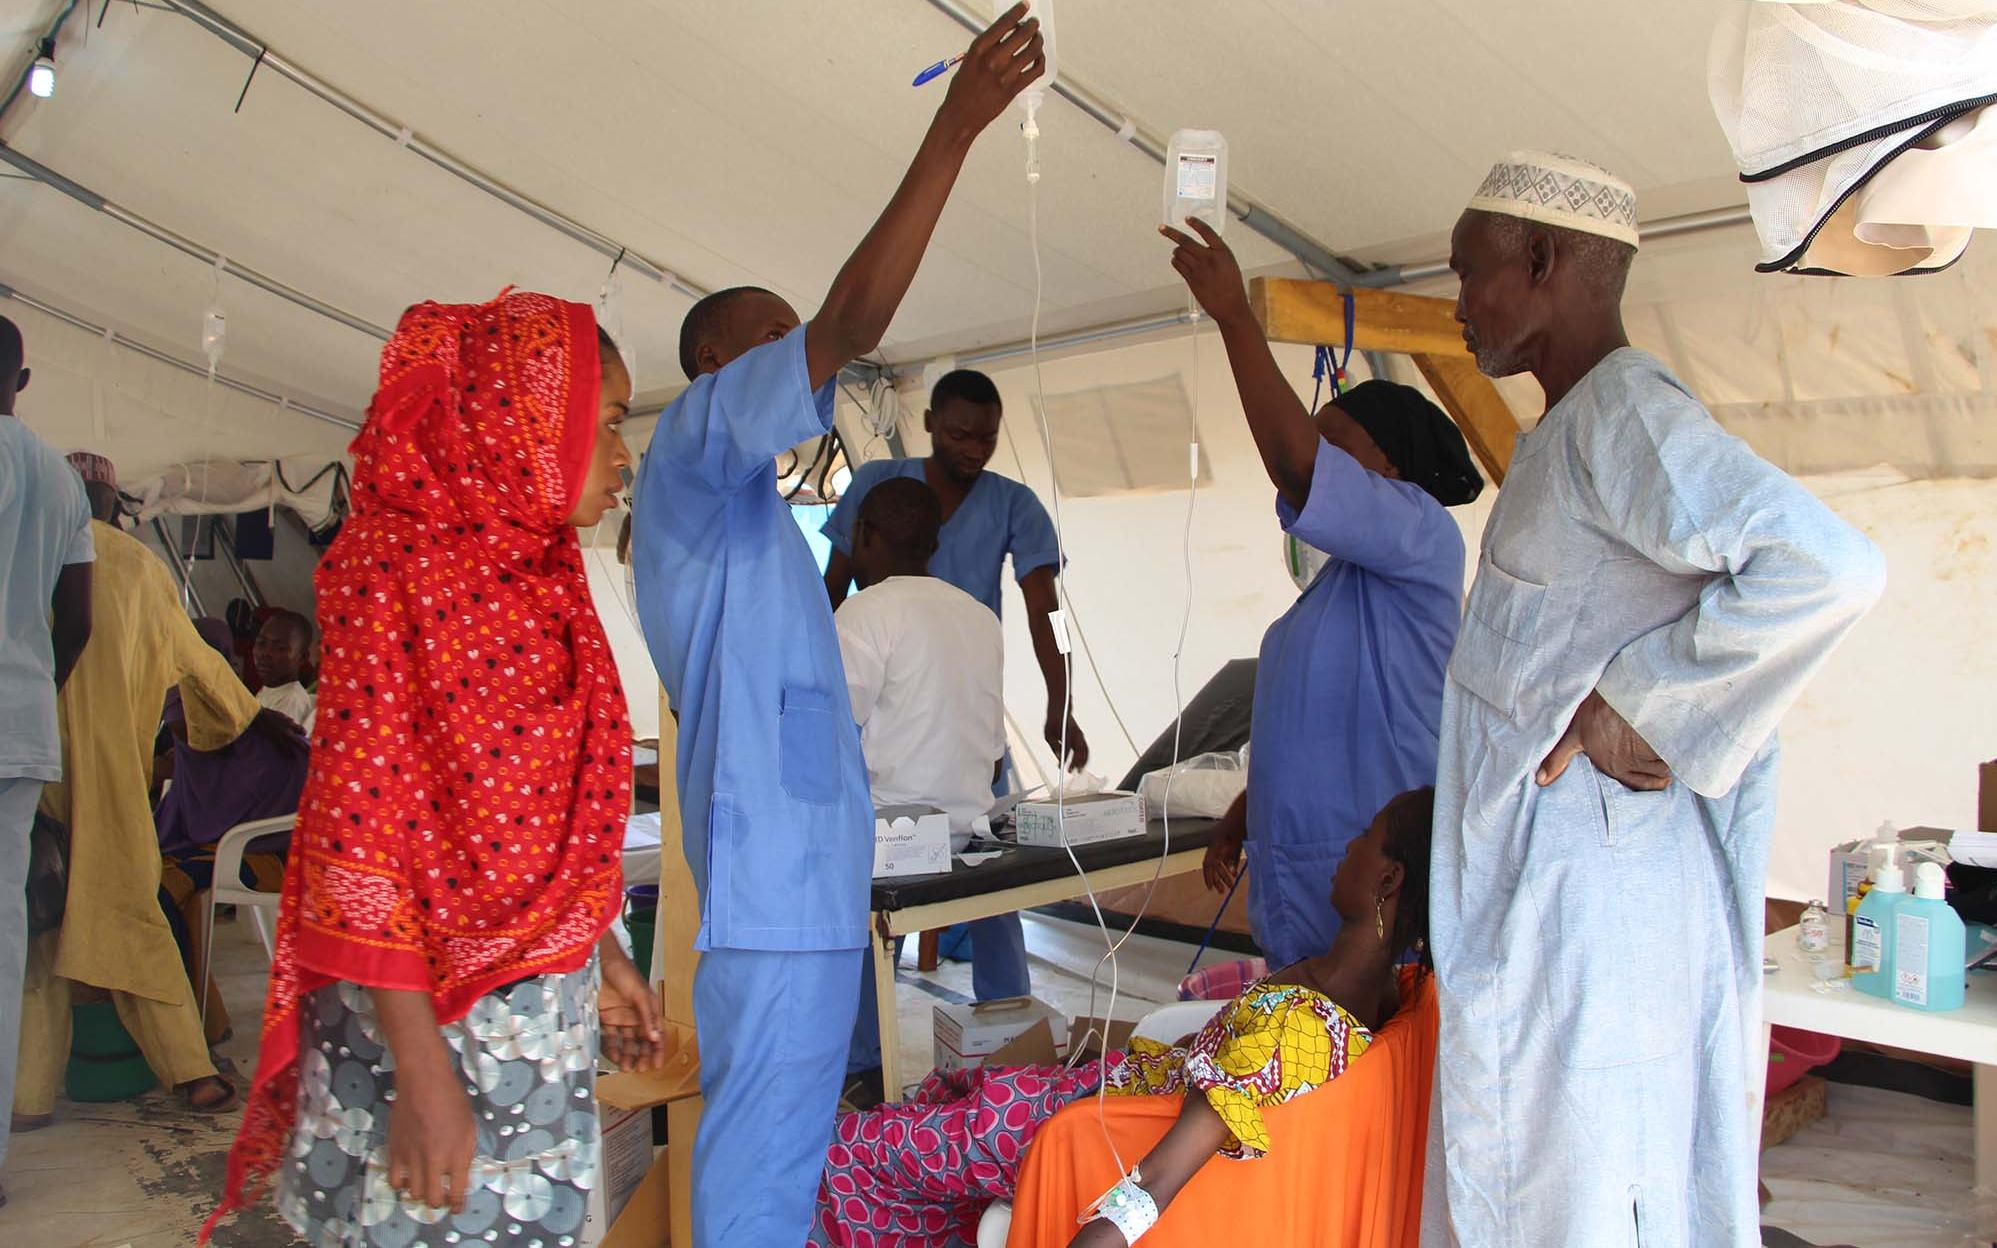 Cholera treatment center in Dala, Maiduguri, Nigeria